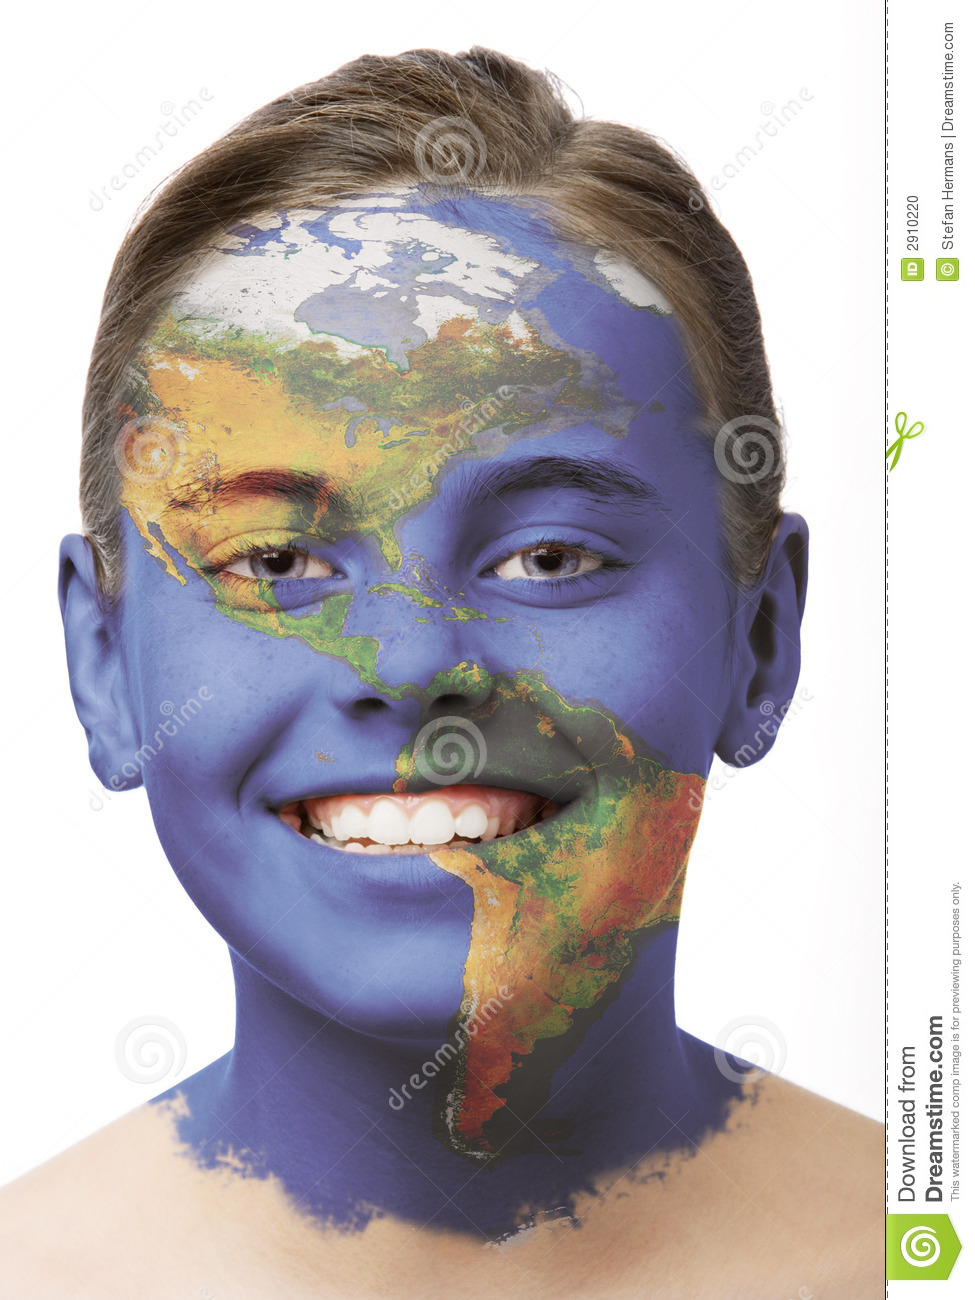 Face paint - America